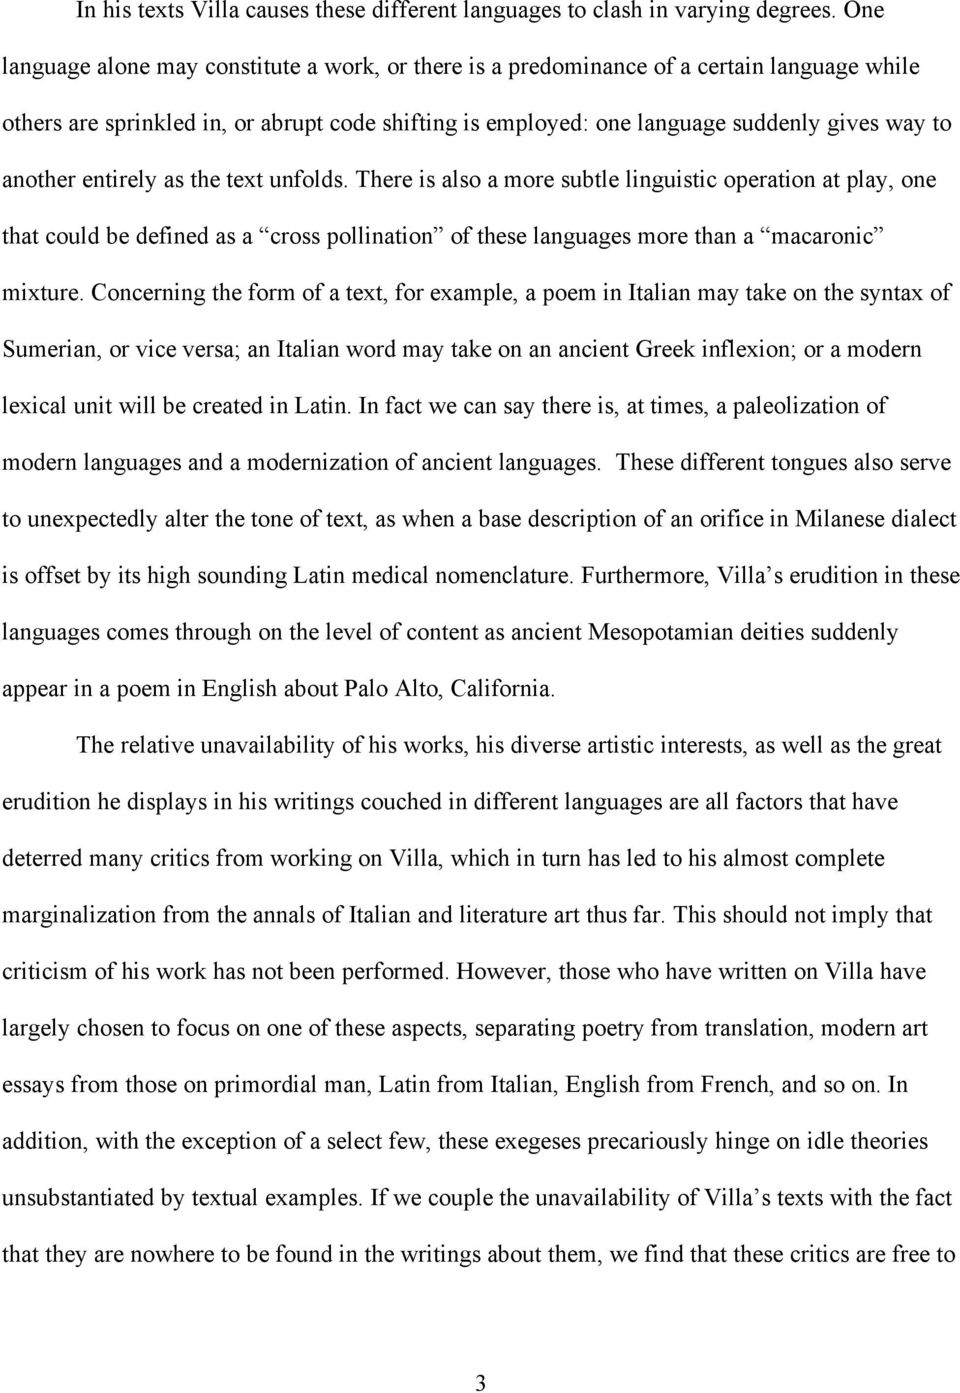 another entirely as the text unfolds. There is also a more subtle linguistic operation at play, one that could be defined as a cross pollination of these languages more than a macaronic mixture.